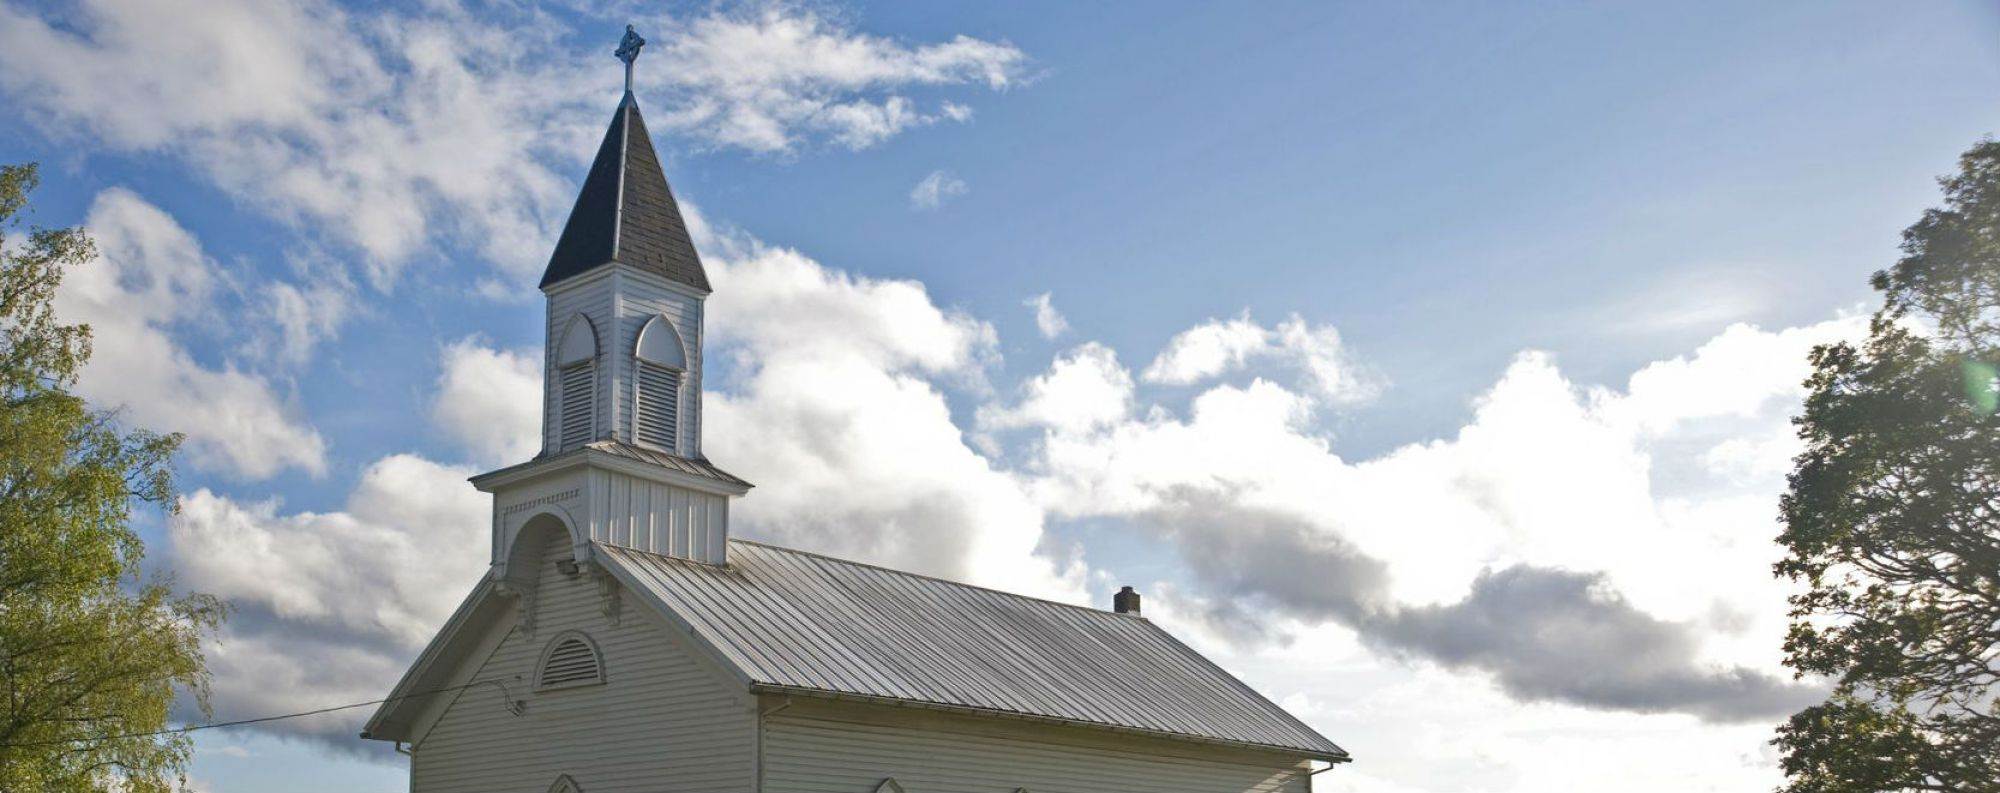 Texas Church Property Insurance